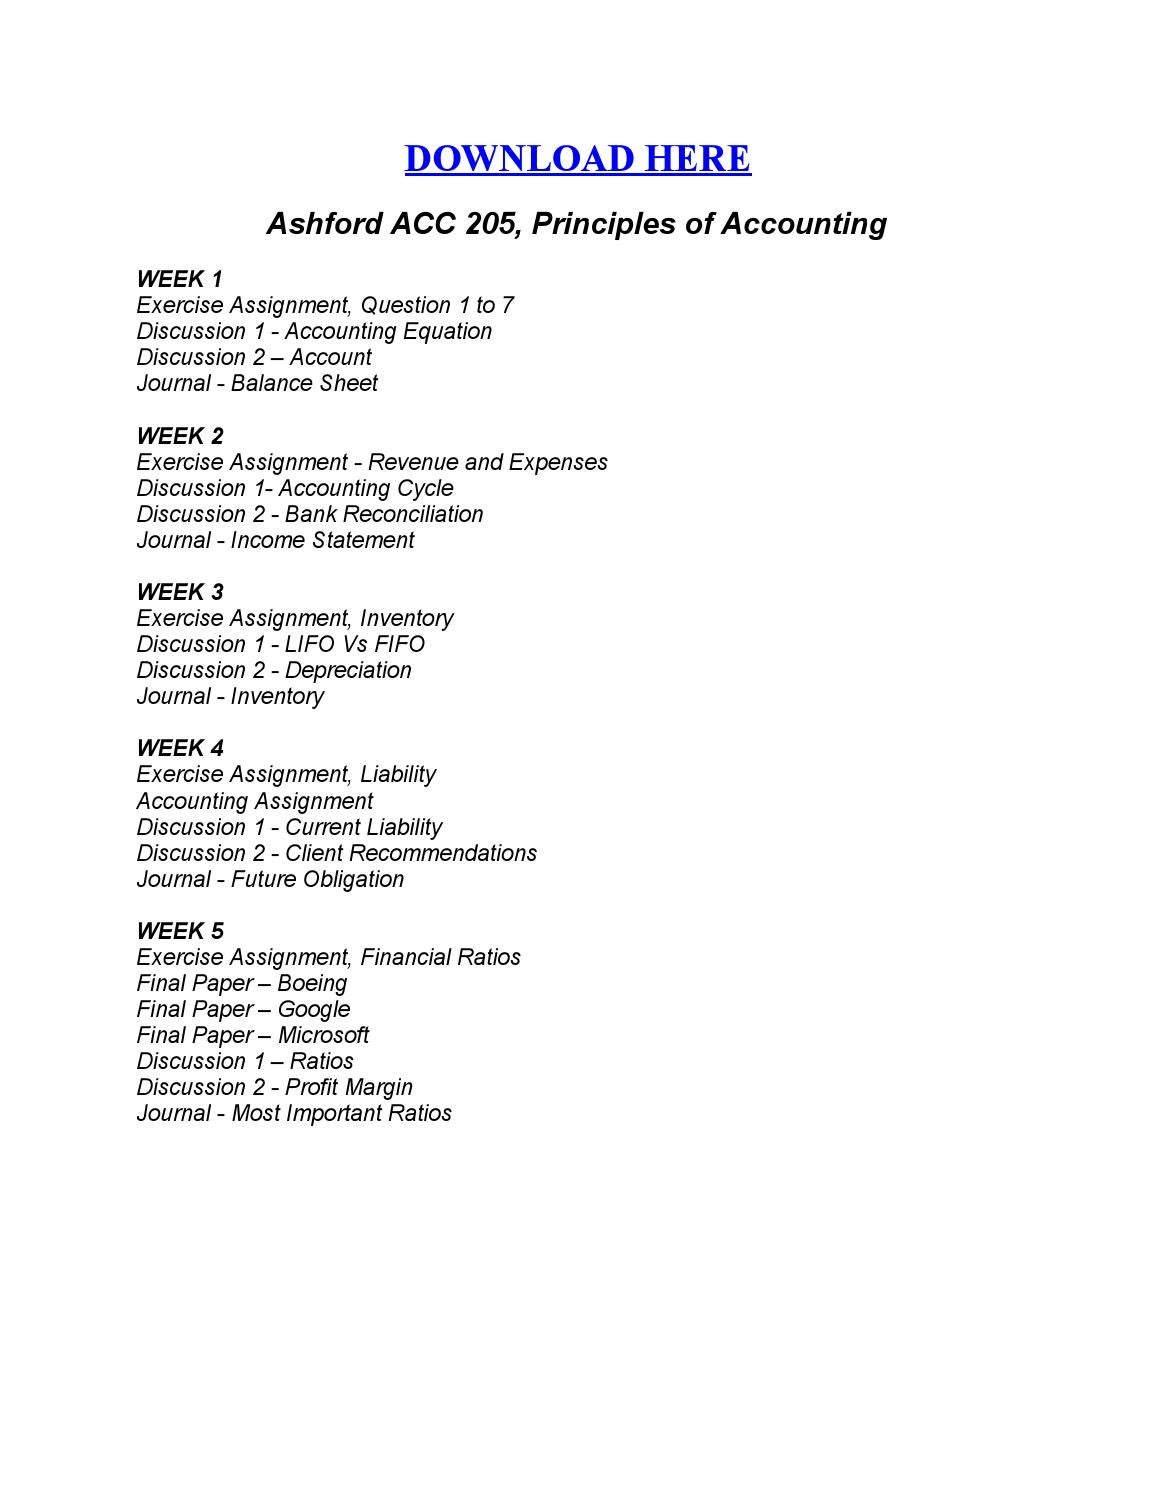 week A pair of acc 205 essay